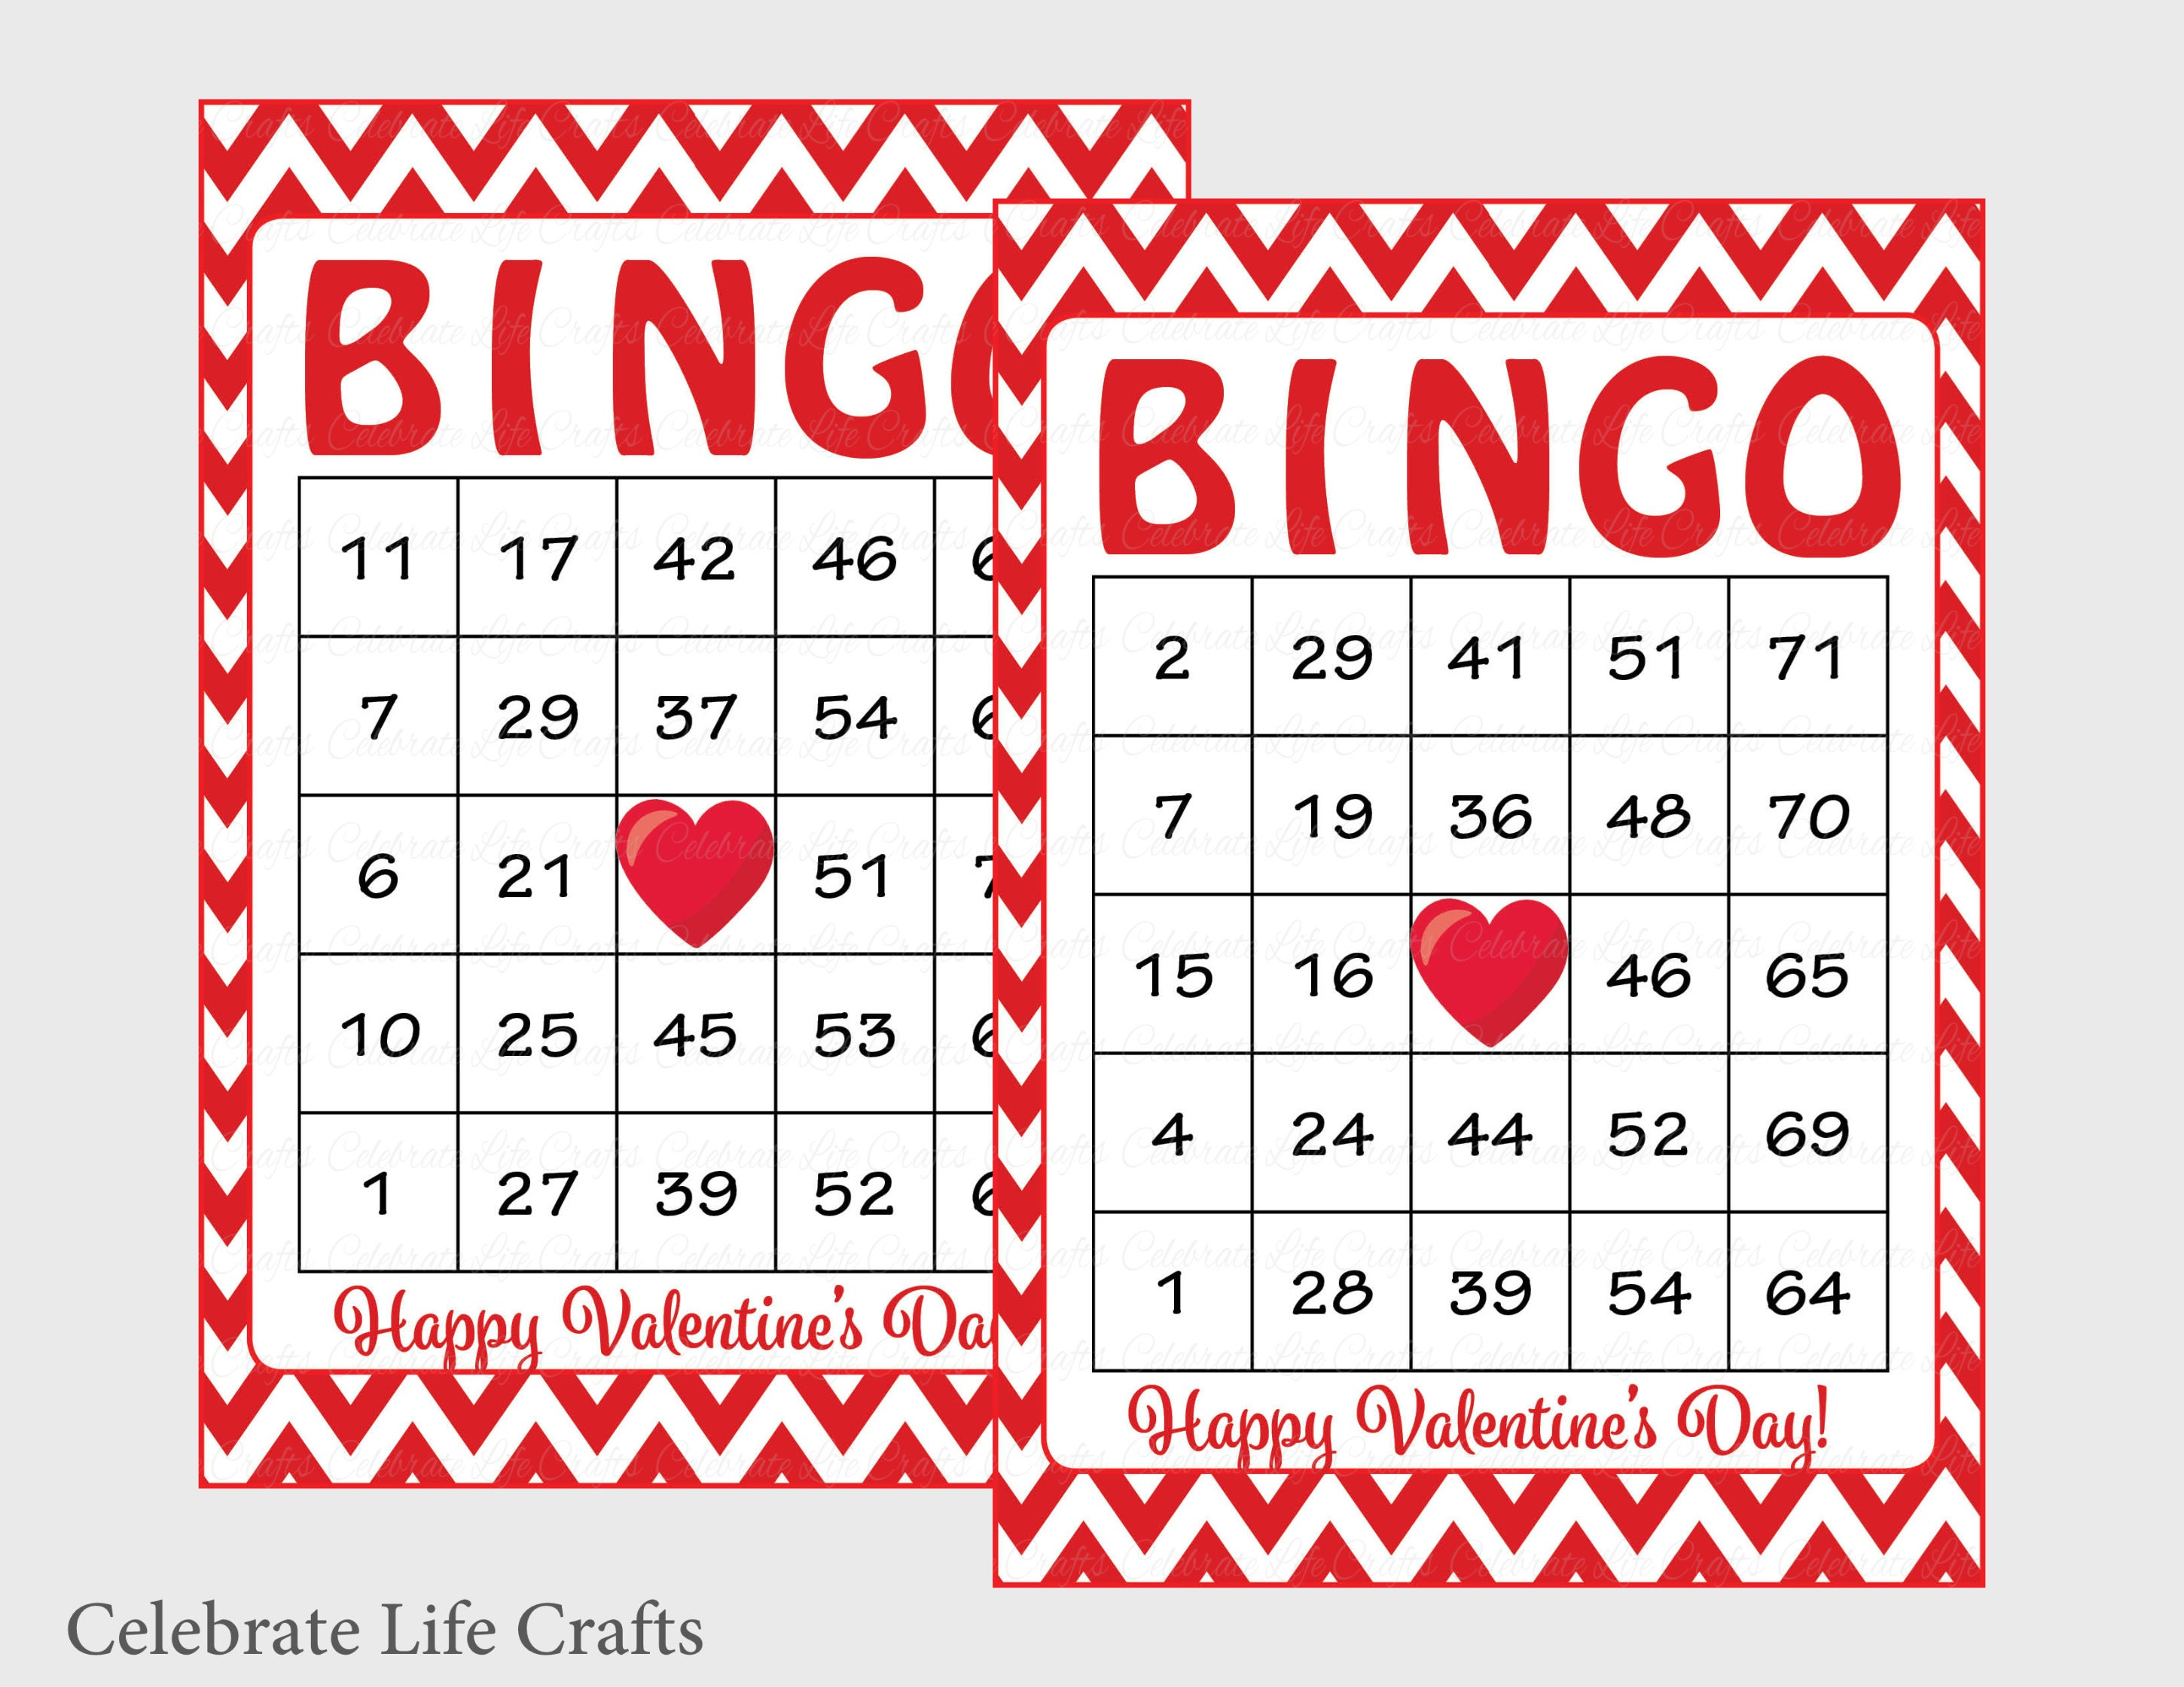 picture about Printable Valentine Bingo Cards identified as 60 Valentines Bingo Playing cards - Printable Valentine Bingo Playing cards - Instantaneous Obtain - Valentines Working day Sport for youngsters - Crimson Chevrons V1006